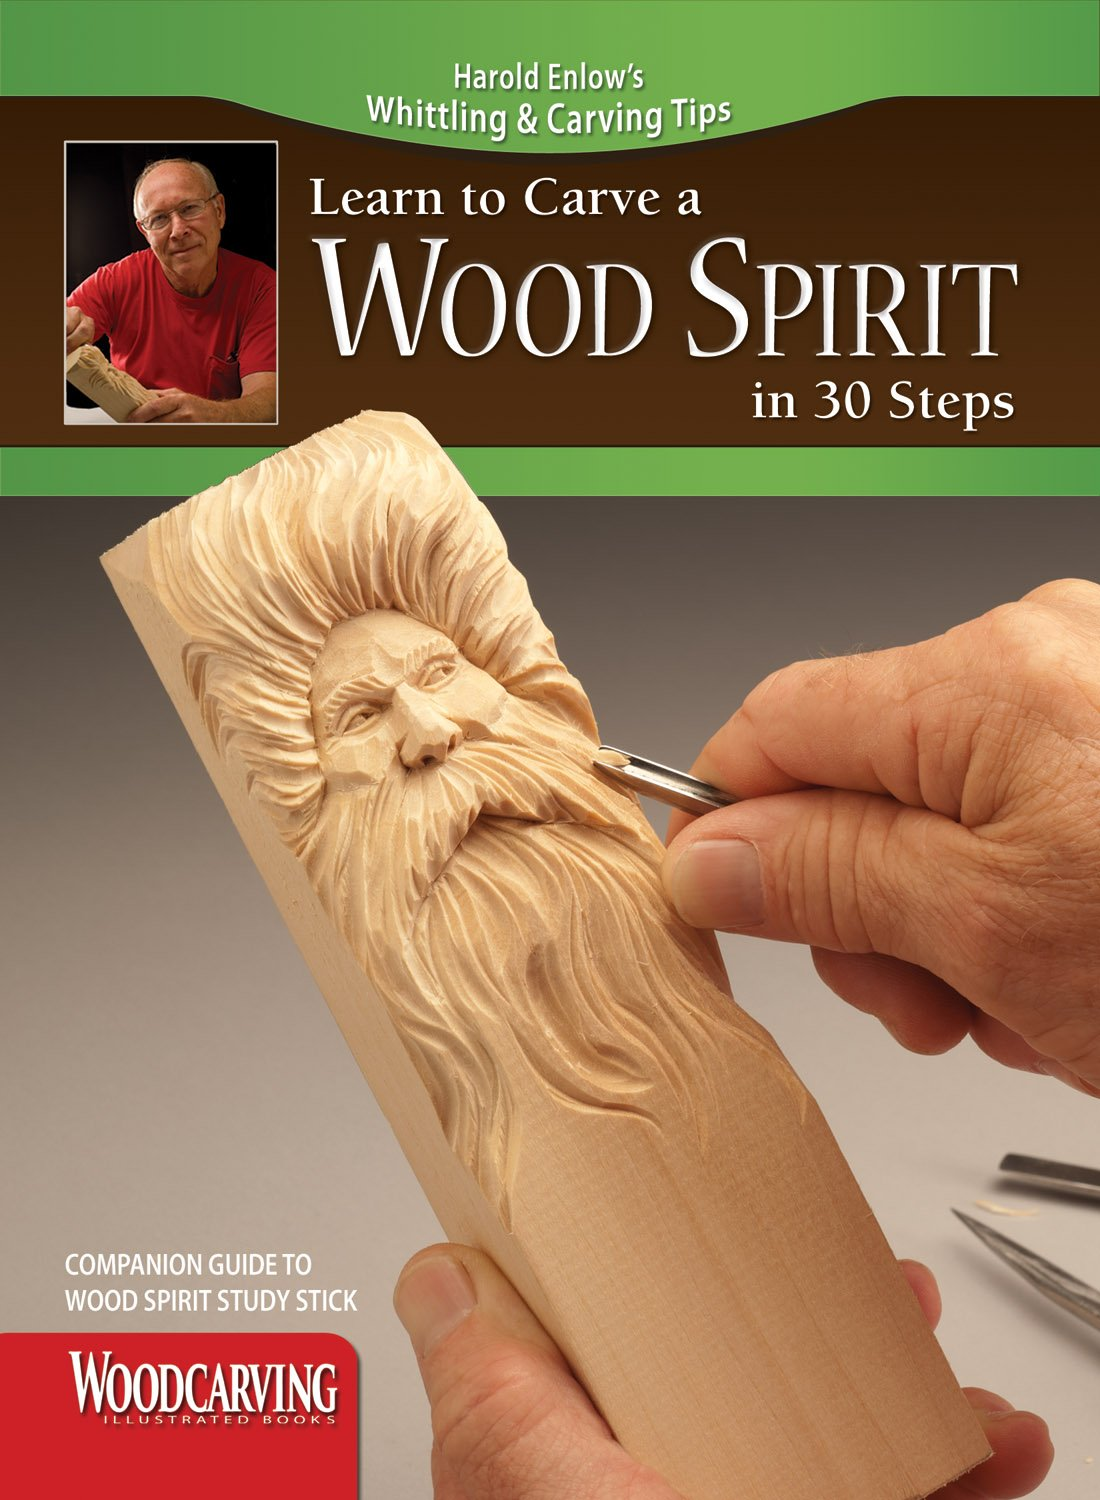 Learn to Carve a Wood Spirit in 30 Steps